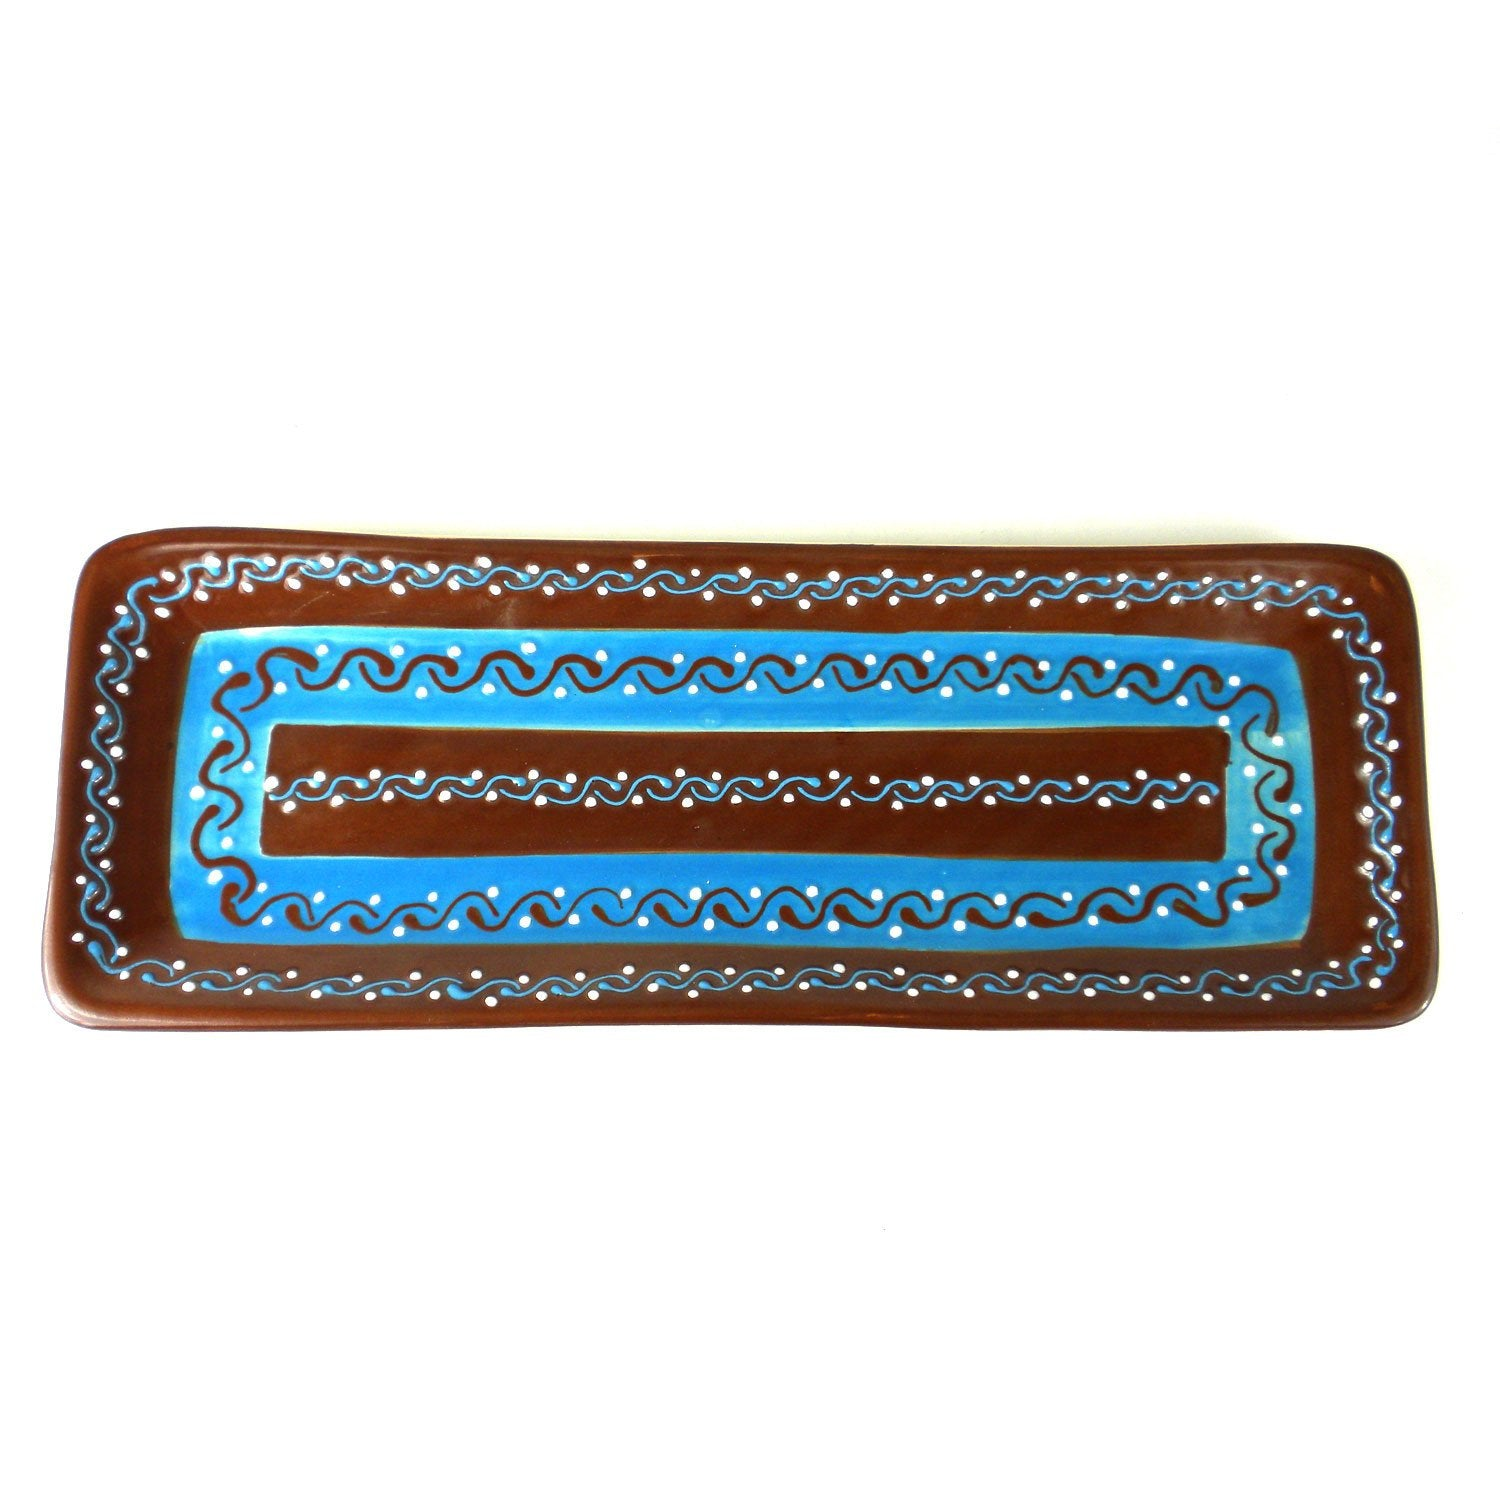 Encantada Handmade Pottery 16 Rectangular Serving Platter, Chocolate